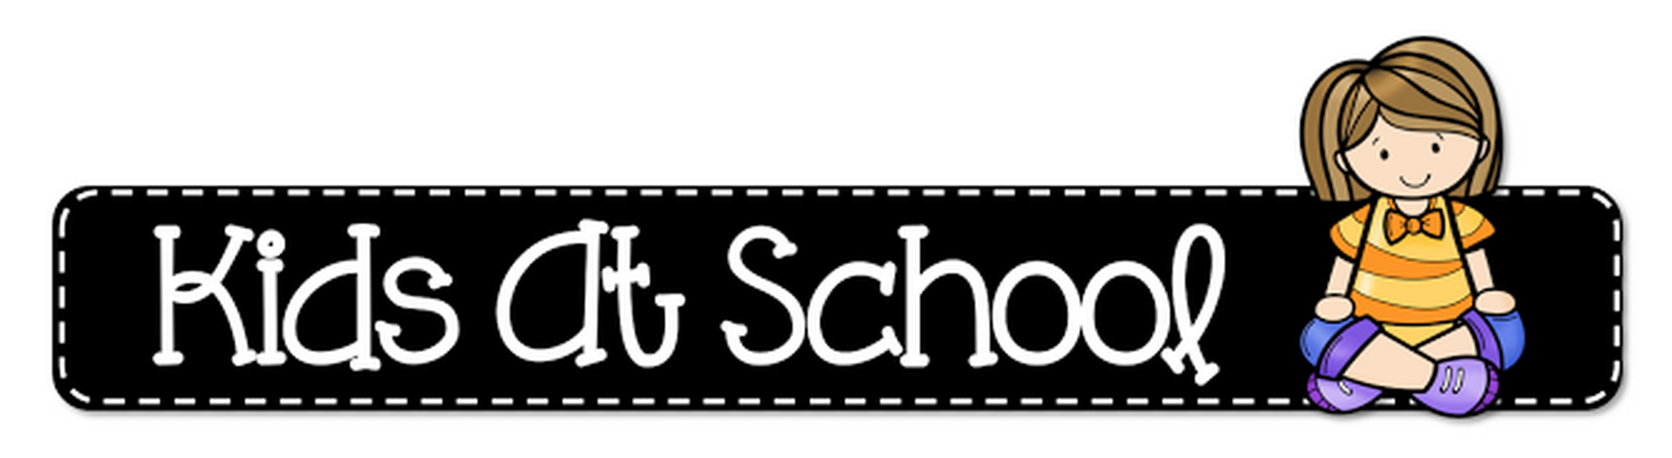 Header Clipart Kids At School